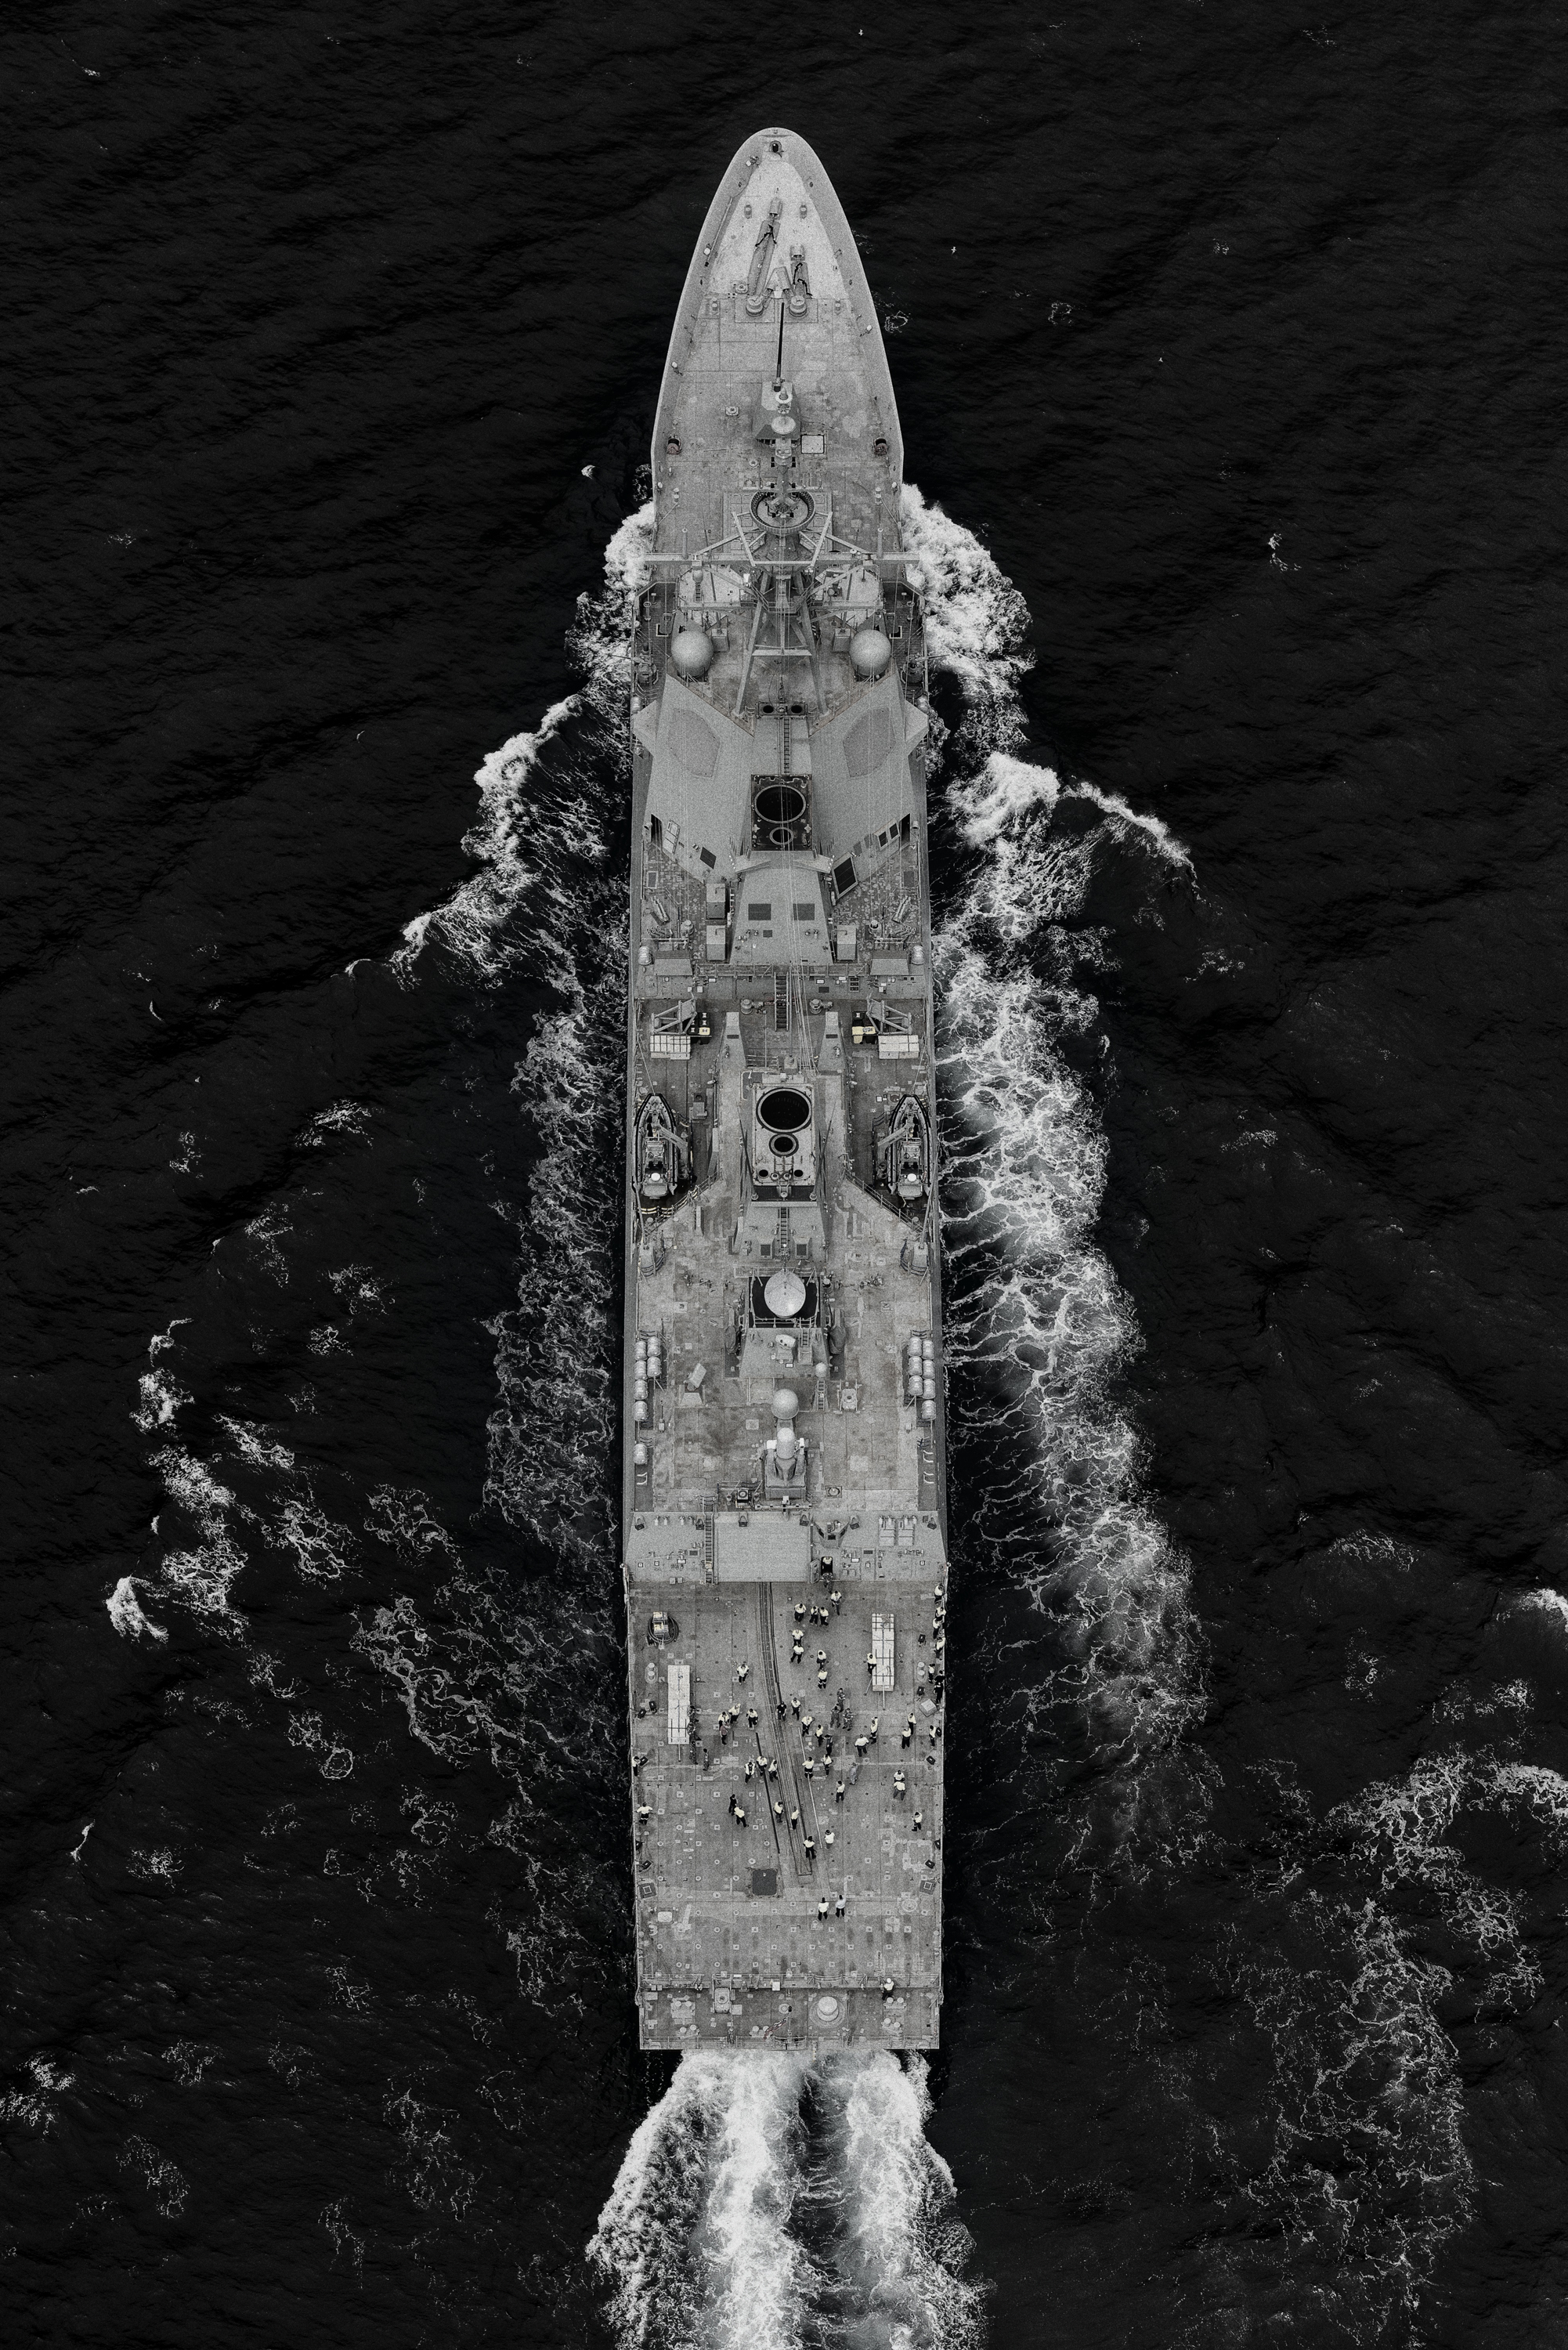 NUSHIP Brisbane (III) is the second of three ships of the Hobart Class guided missile destroyers. This image was captured for the  Air Warfare Destroyer Alliance  from a helicopter as she underwent sea trials in the Gulf St Vincent. You can see that her deck is yet to be prepared for final delivery. It was a great experience directing a very large ship to undertake specific manoeuvres for the camera - the skipper was amazing, it was an incredible sight to see just how nimble a ship of this size can be! Upon commissioning into the Royal Australian Navy fleet she becomes known as HMAS Brisbane. Shot on a Nikon D800 and processed in Lightroom, Photoshop and Nik Silver Efex.